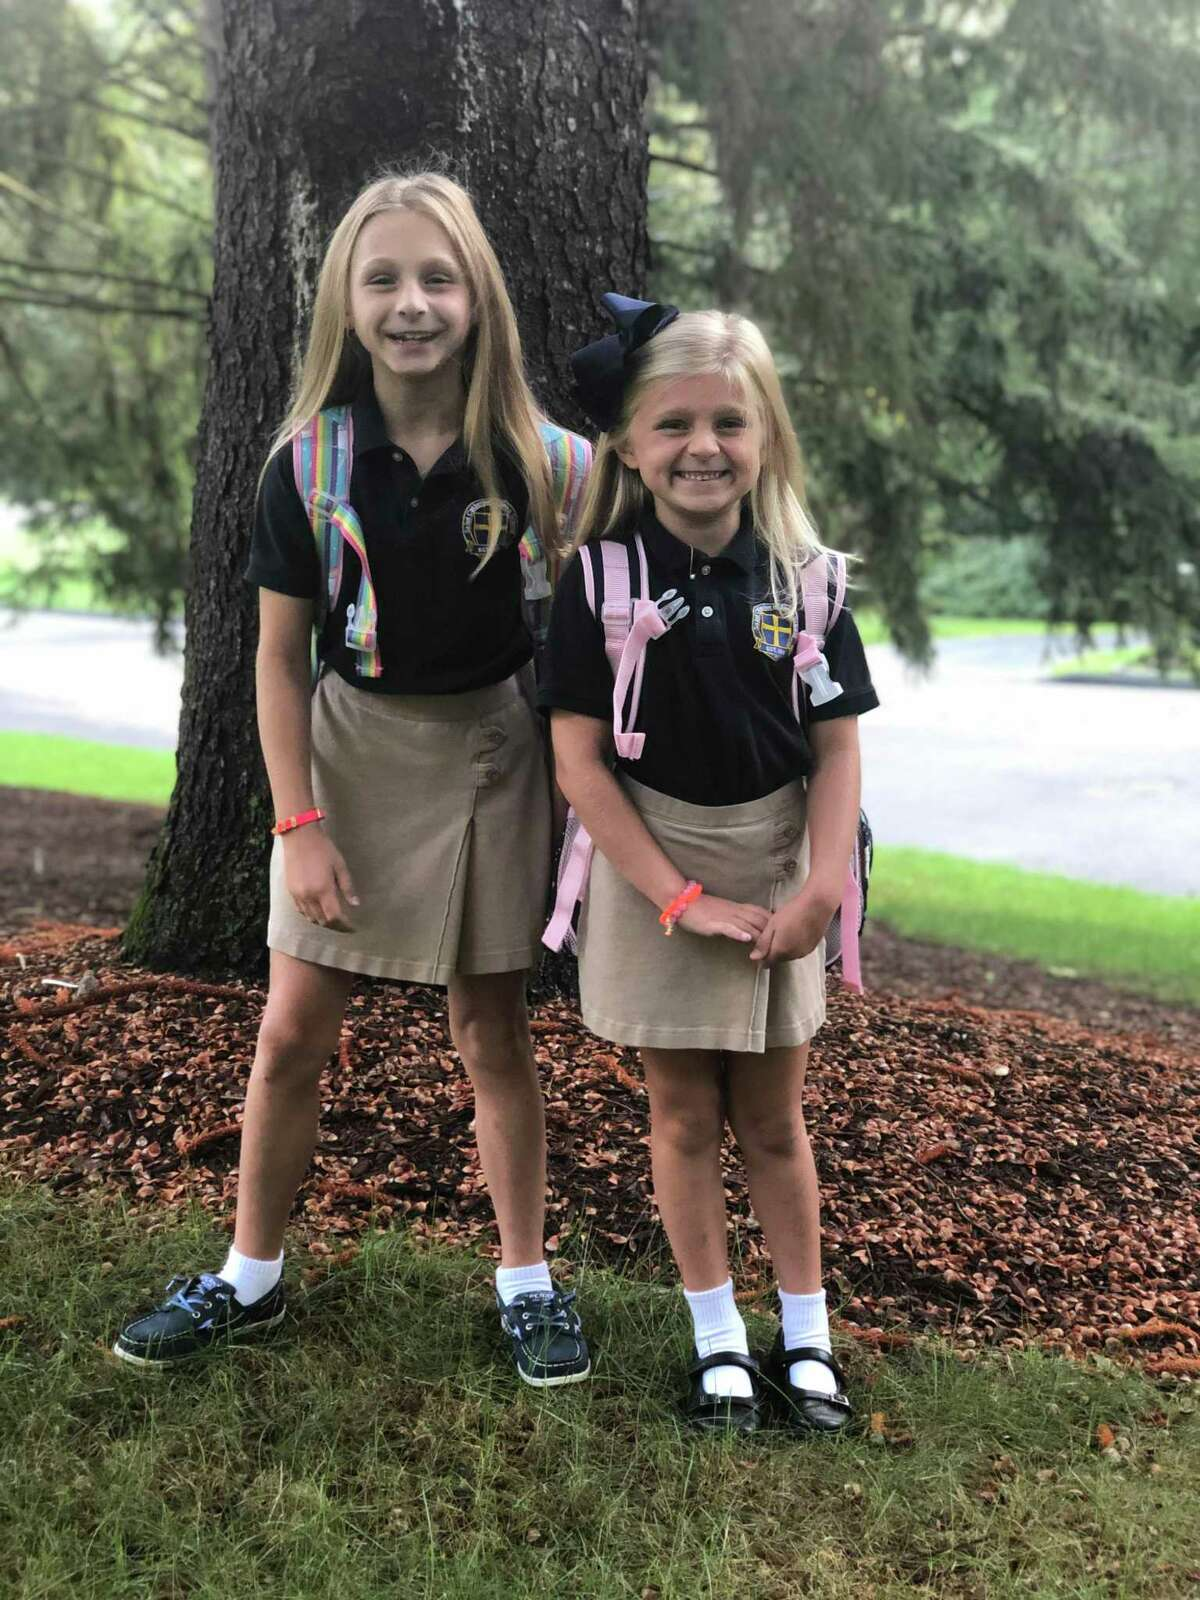 Victoria (grade 3) and Julia Dobrydney (grade 1) on the first day of the 2019-20 school year at St. Catherine of Siena.